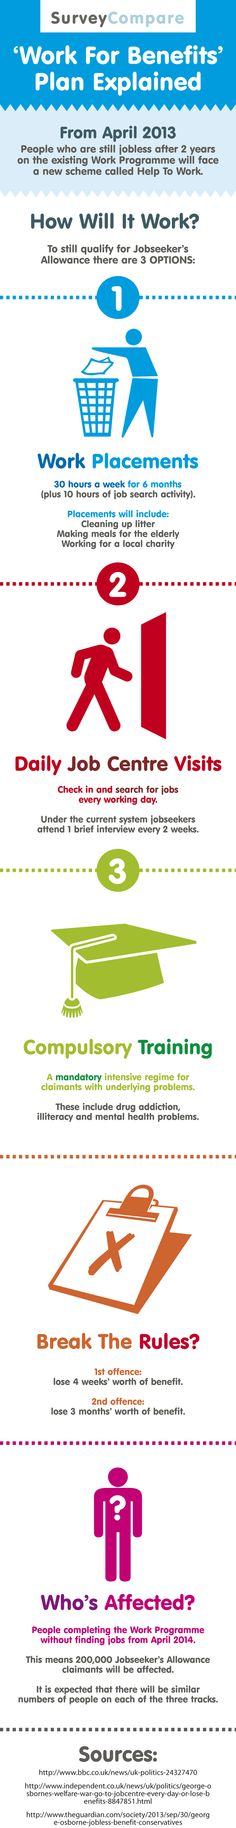 Confused by the government's new Help To Work Scheme? This infographic has all the information you need